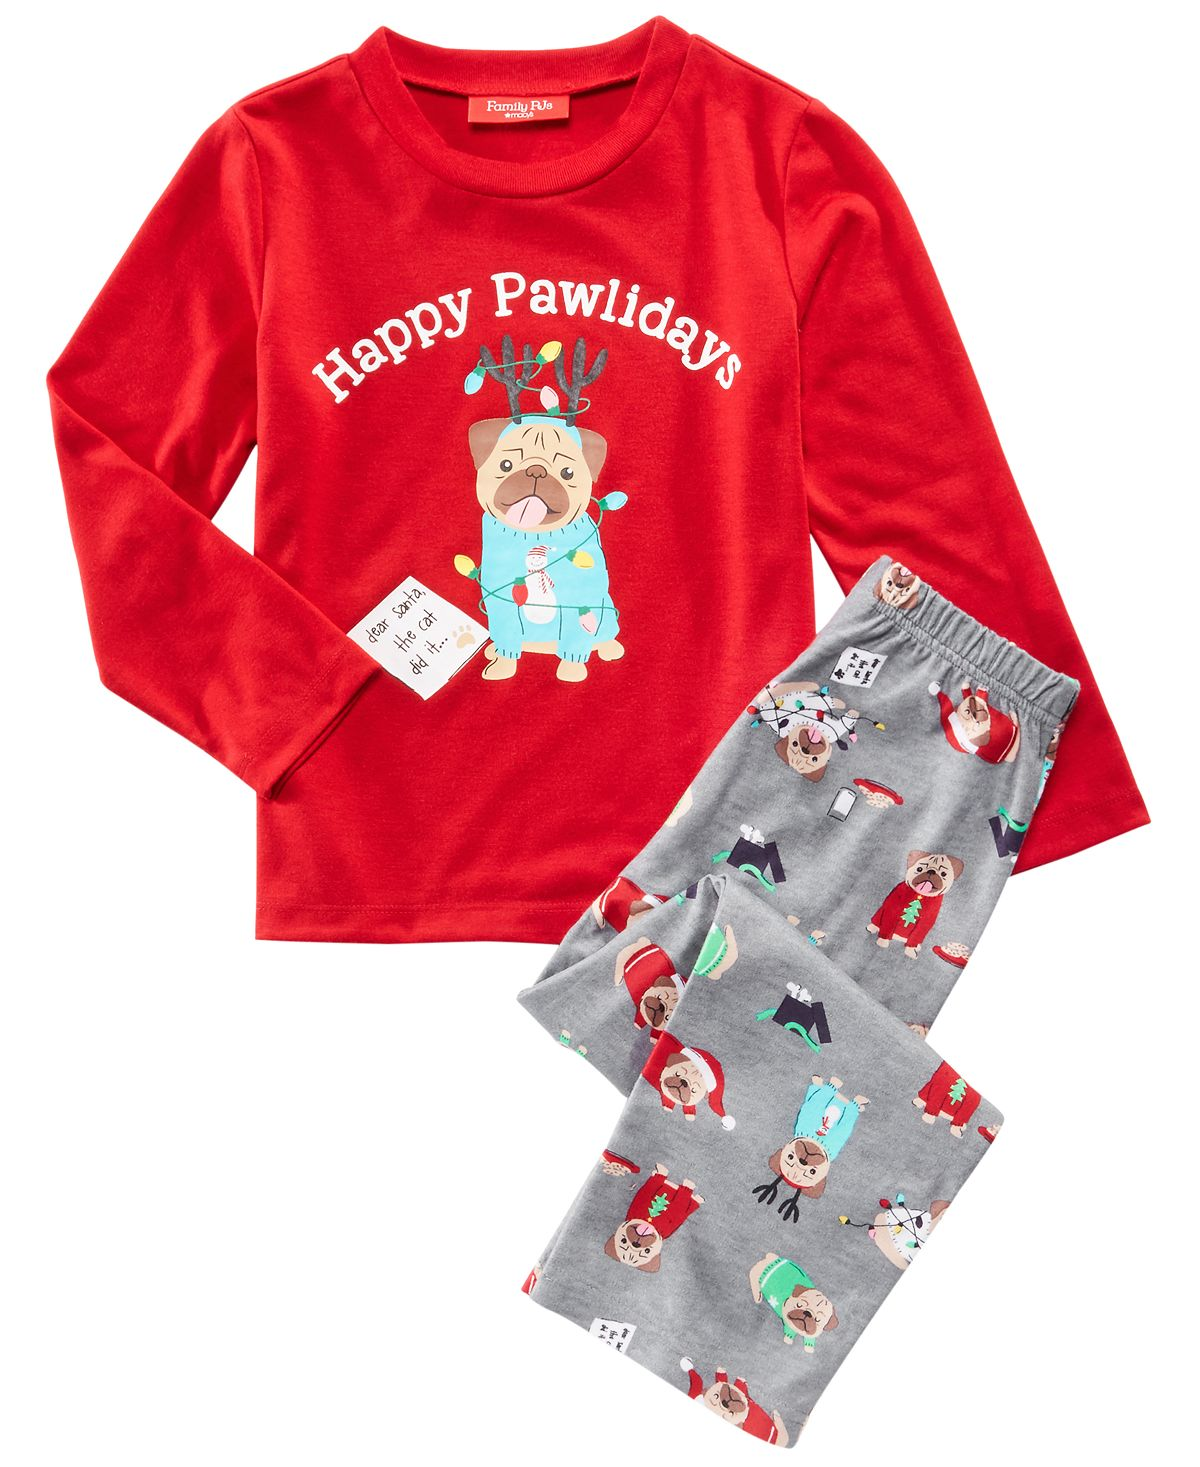 Matching Family Pajamas Kids Happy Pawlidays Pajama Set